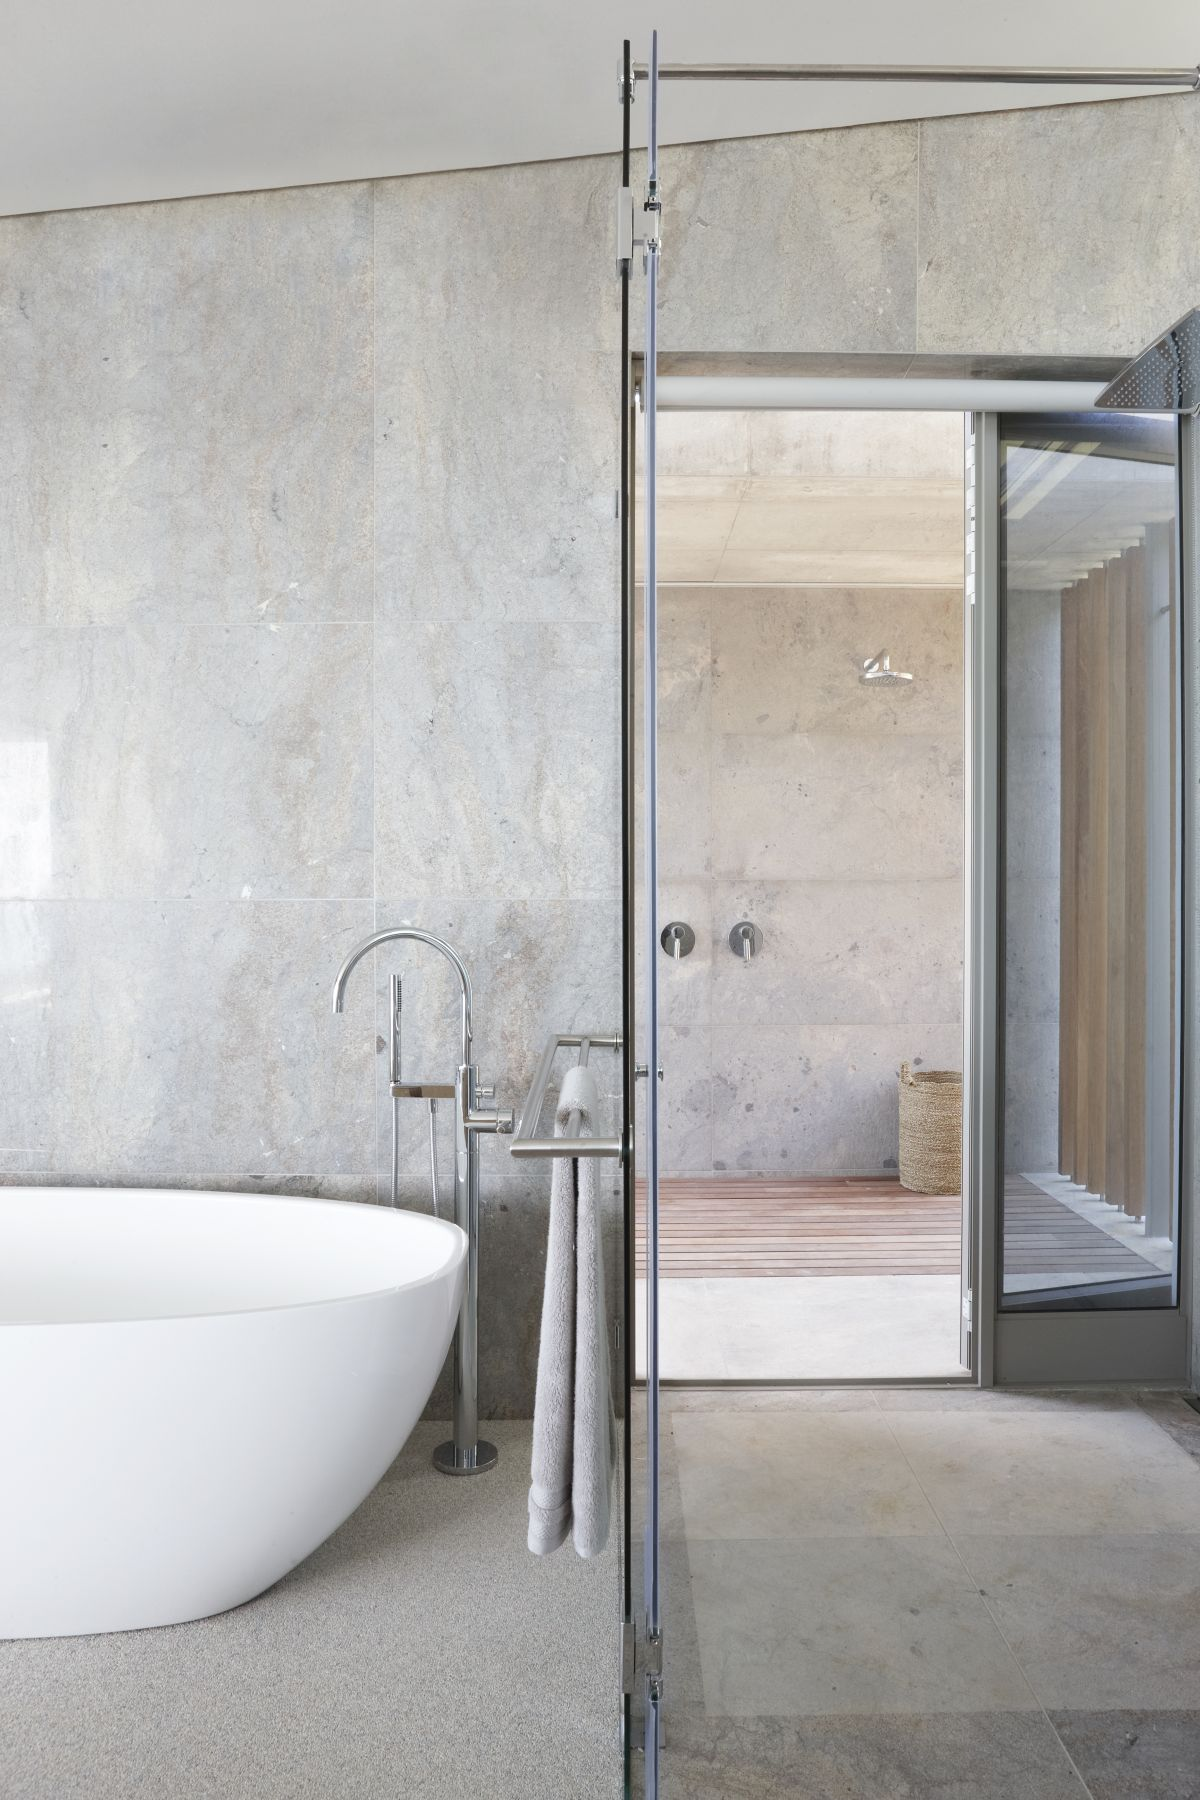 The bathroom is also here, with a shower space and clad with grey tiles